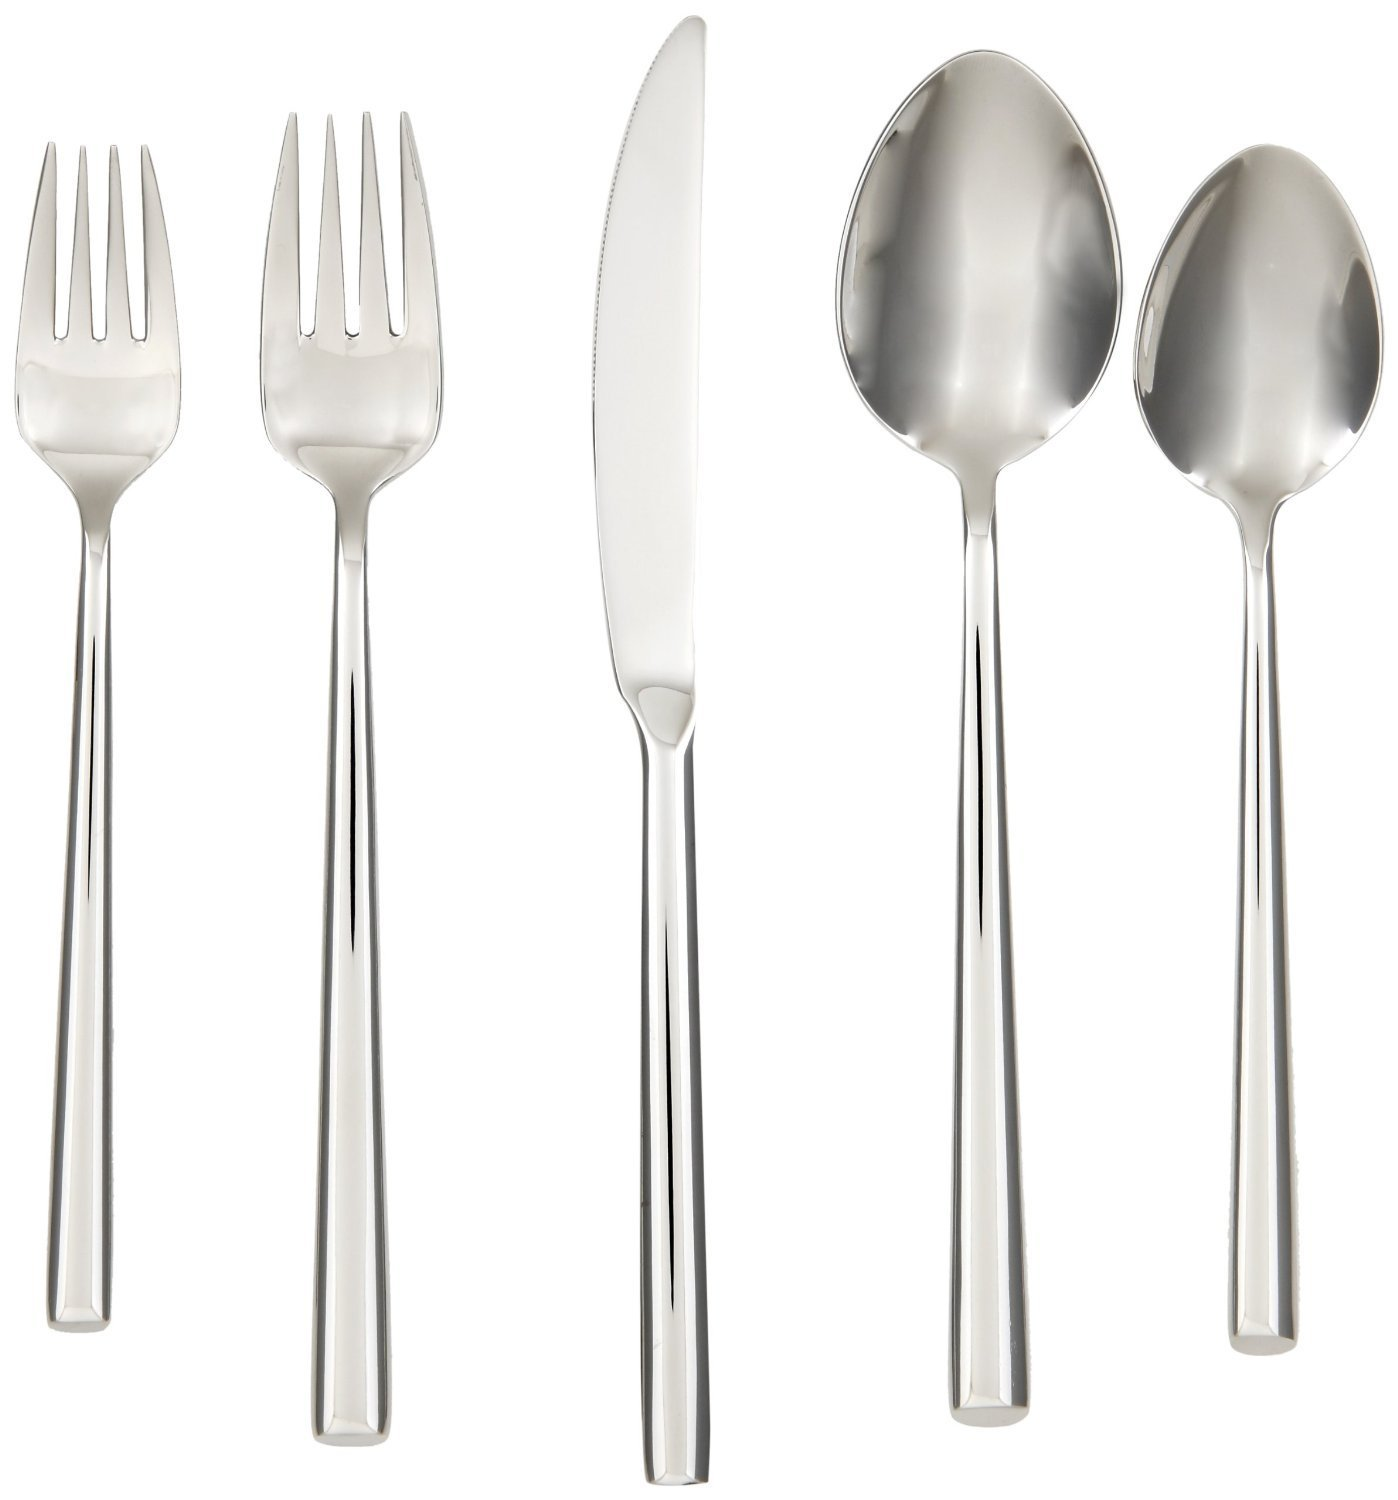 Cool cambridge flatware 5 pcs silverware flatware for kitchen or dining Ideas